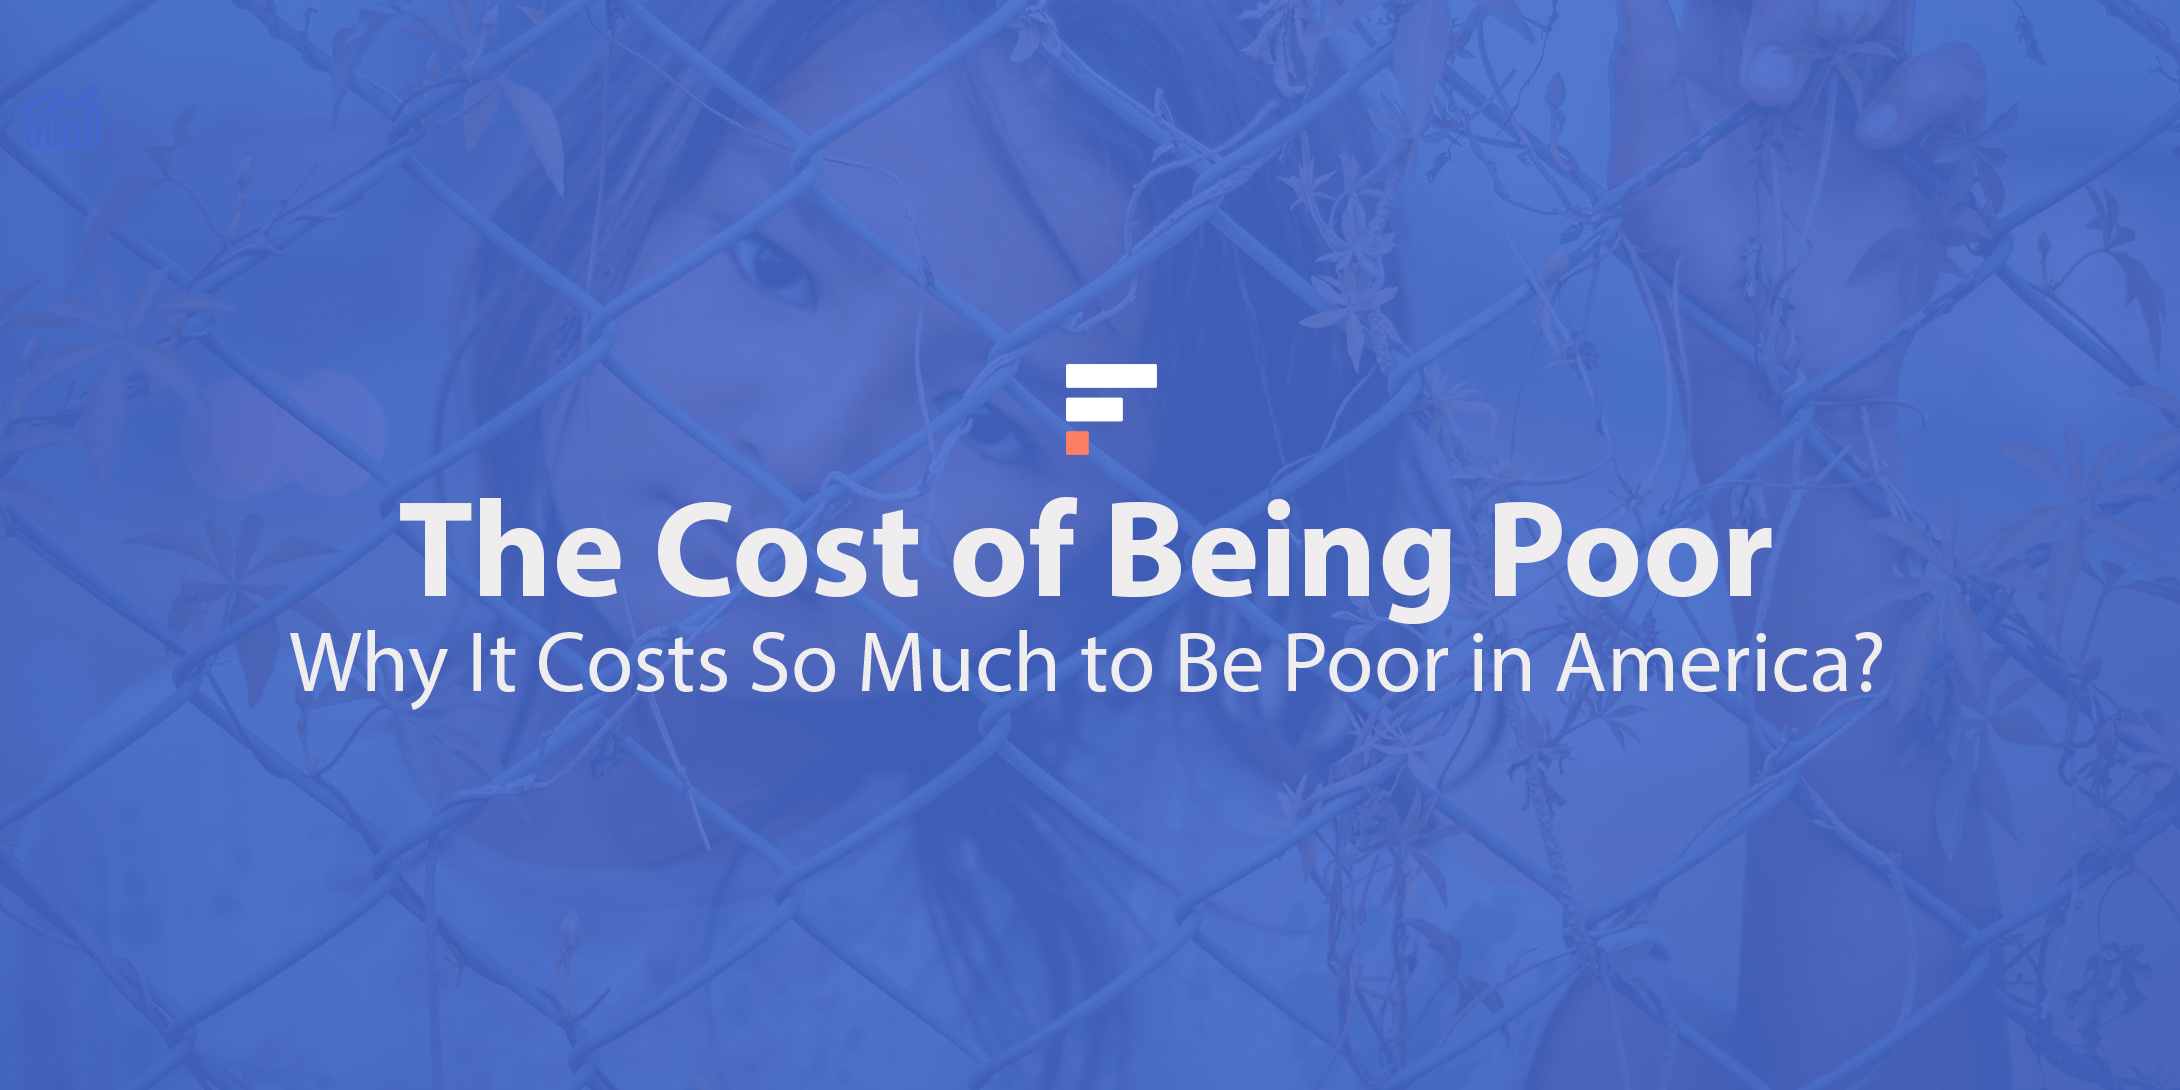 The cost of being poor